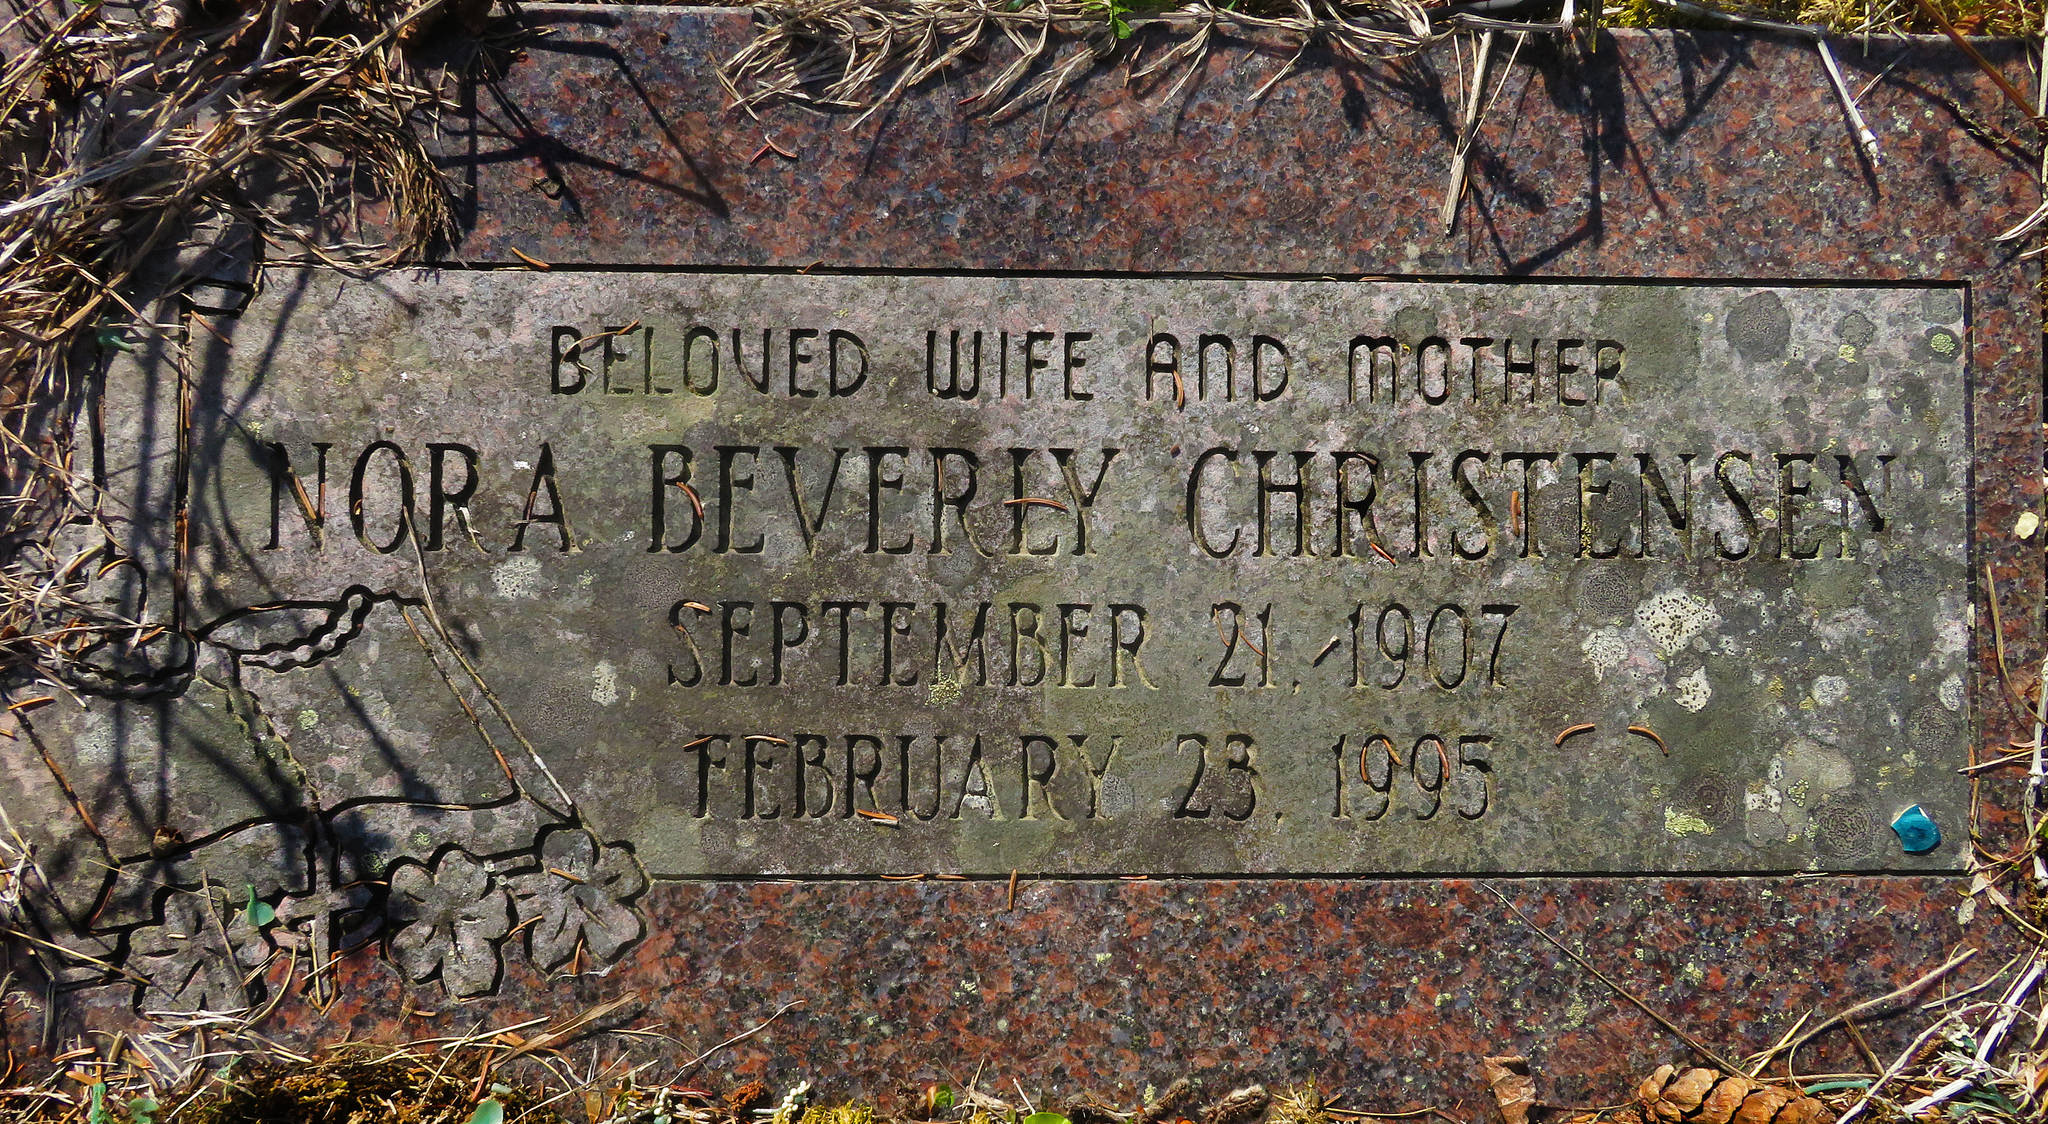 Beverly Christensen's headstone. She was laid to rest in Spruce Grove Memorial Park in Kasilof in 1995. (Photo by Clark Fair)